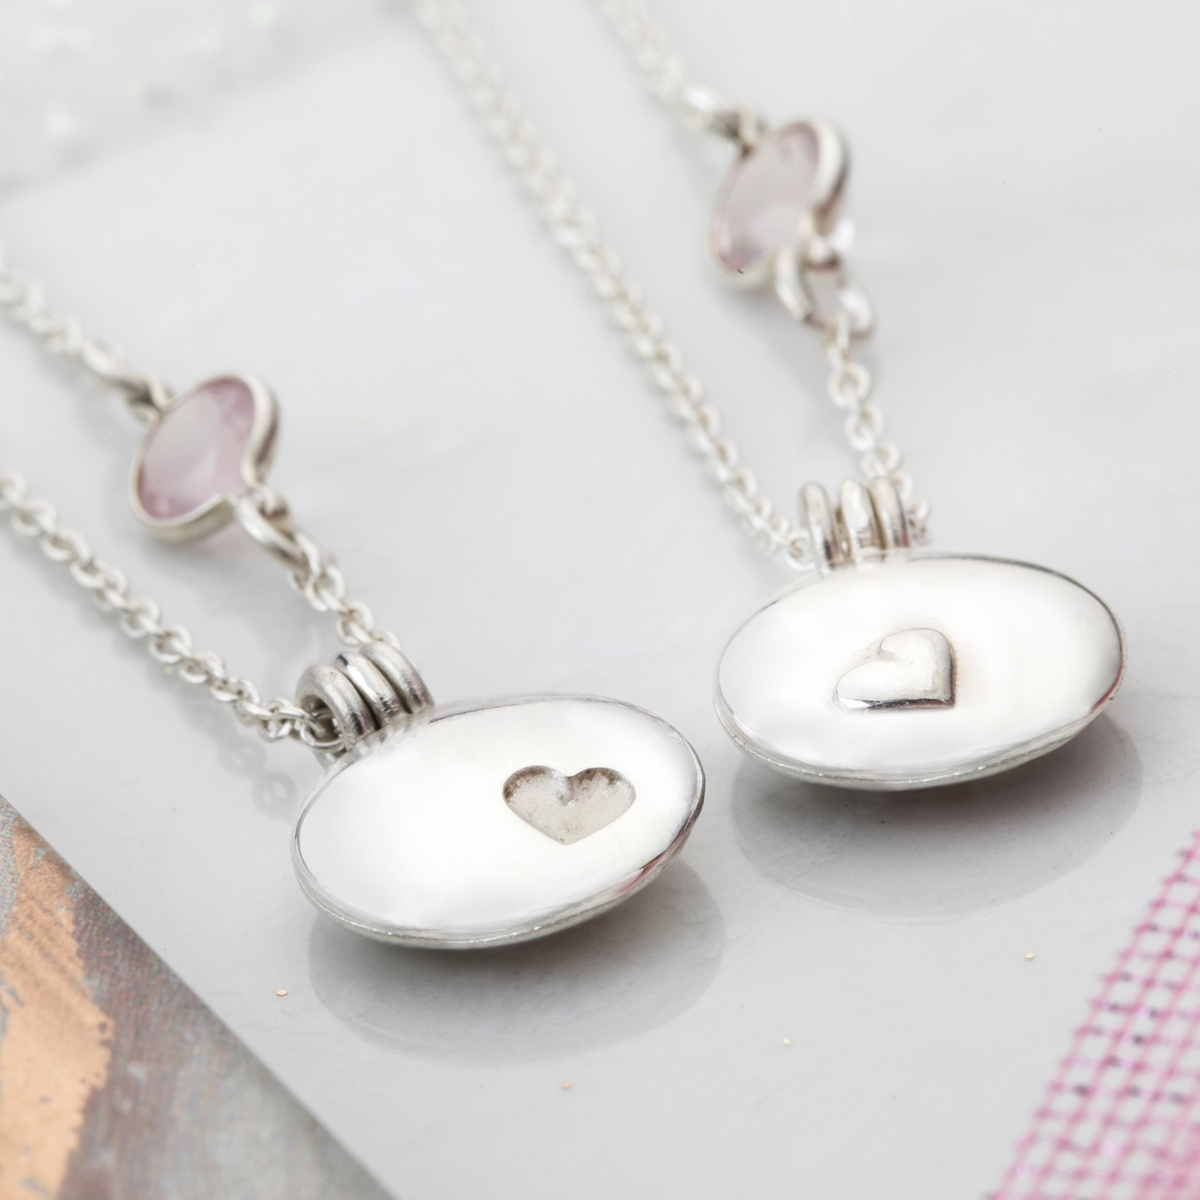 Sister and Best friend locket set, matching necklace for you and your friend